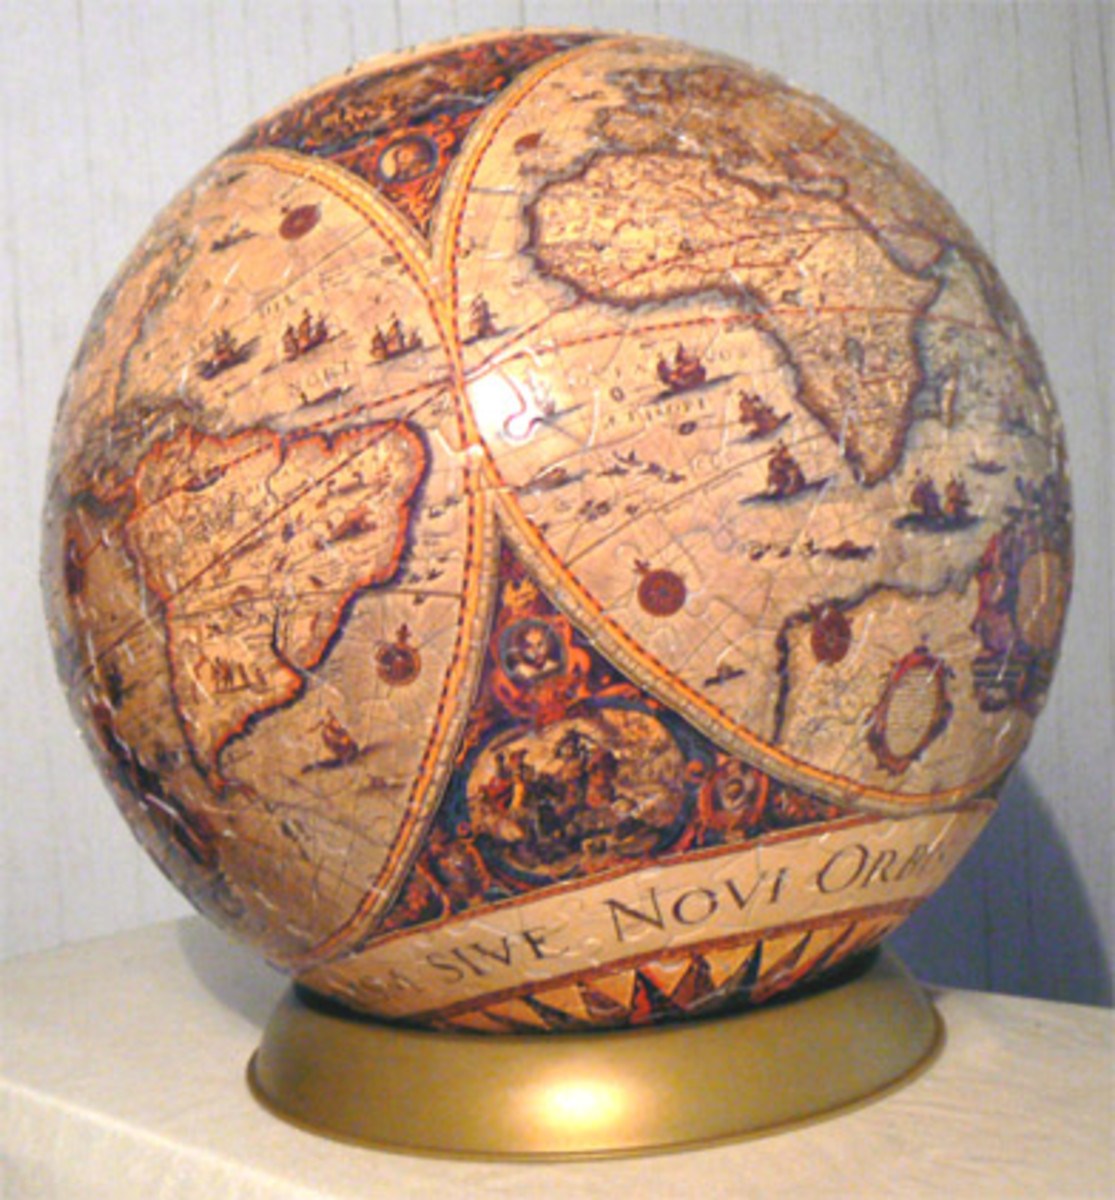 A finished globe 3D puzzle - fun to piece together and beautiful upon completion!